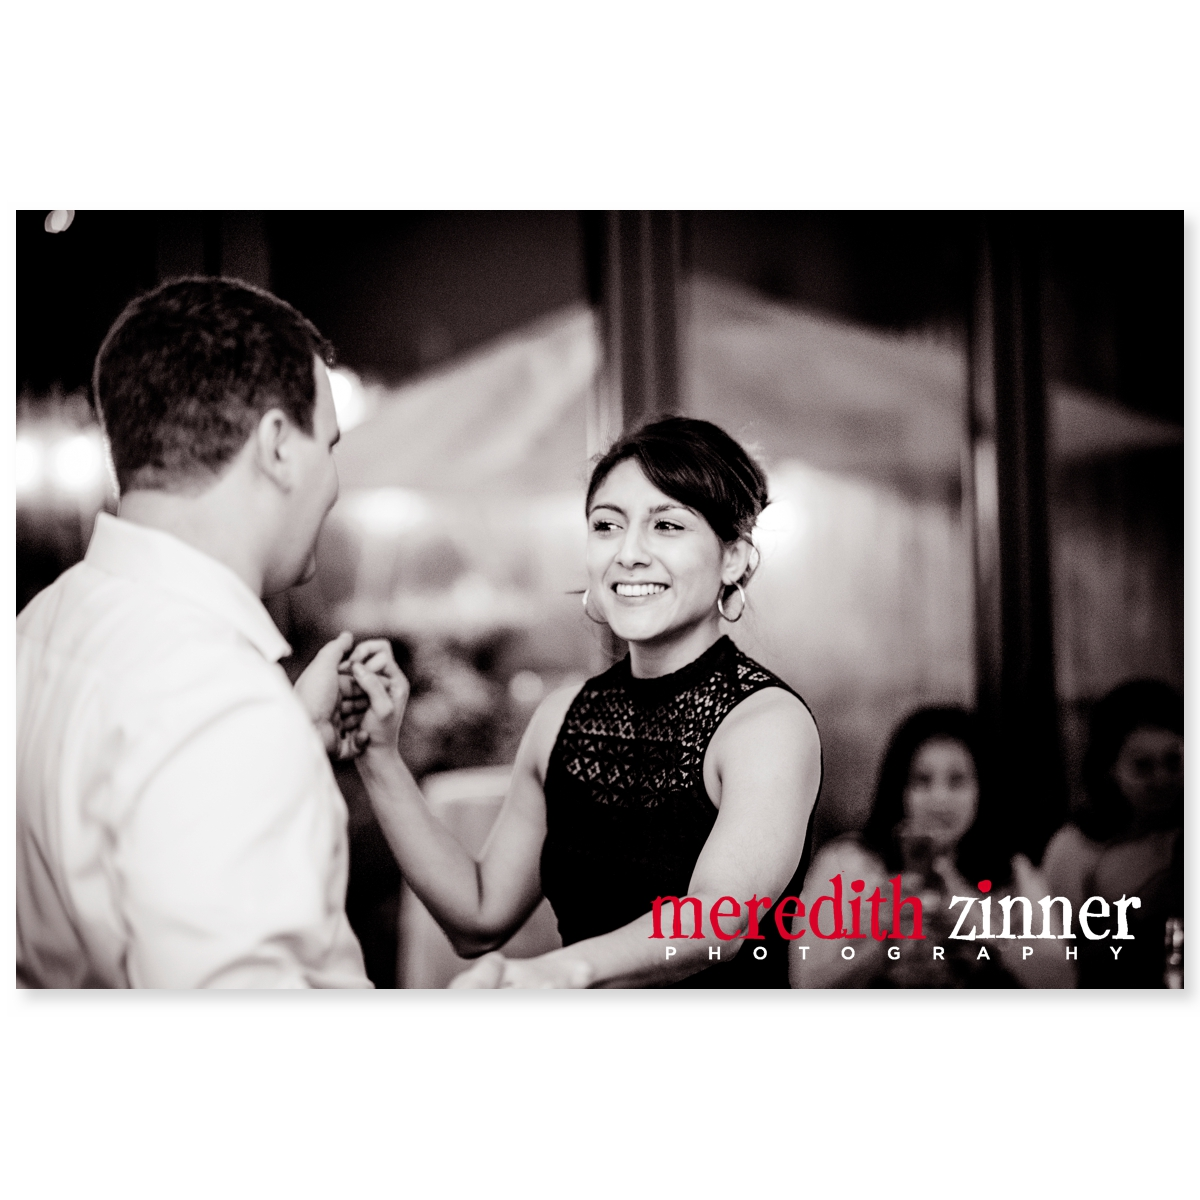 Meredith_Zinner_Photography_StilesCelebration_0384